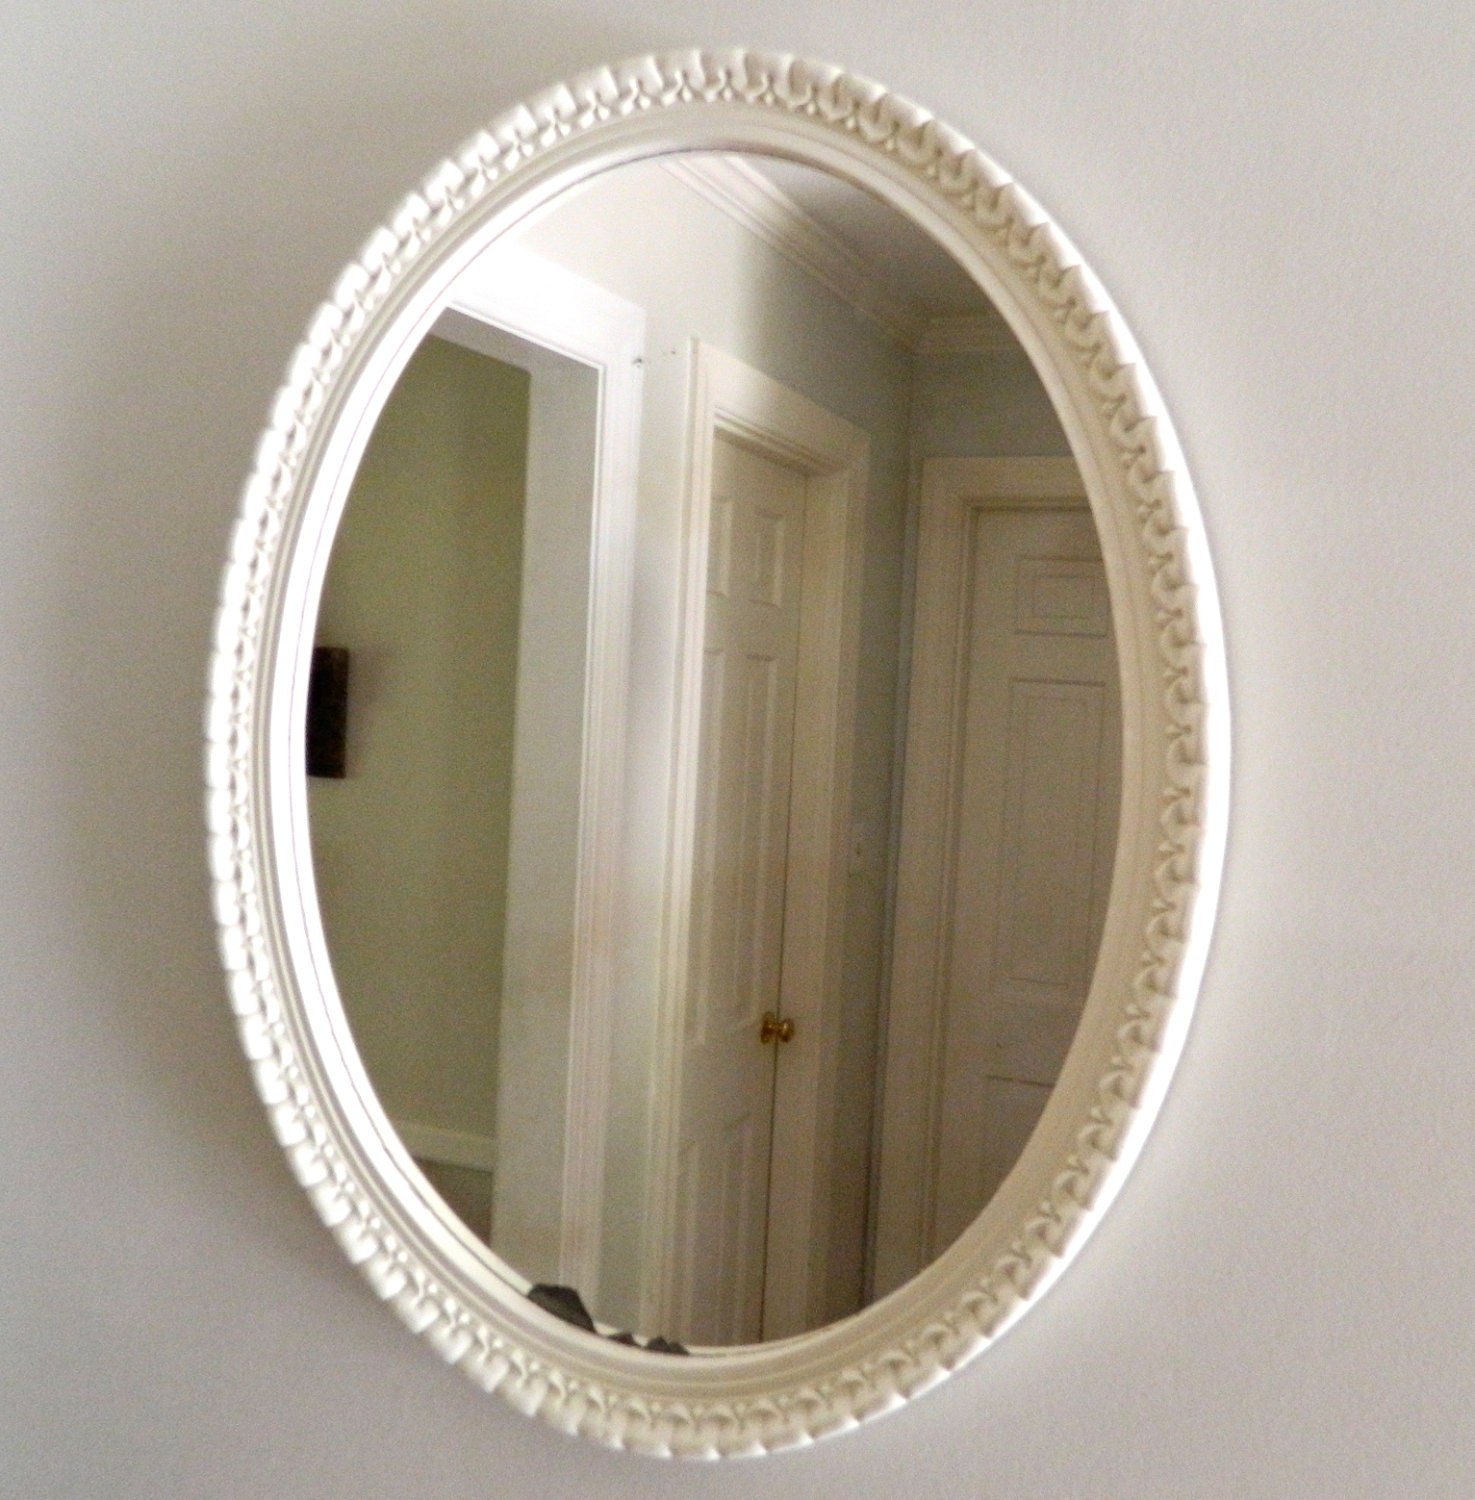 Vintage mirror oval white shabby chic wood by alwaysmaybevintage